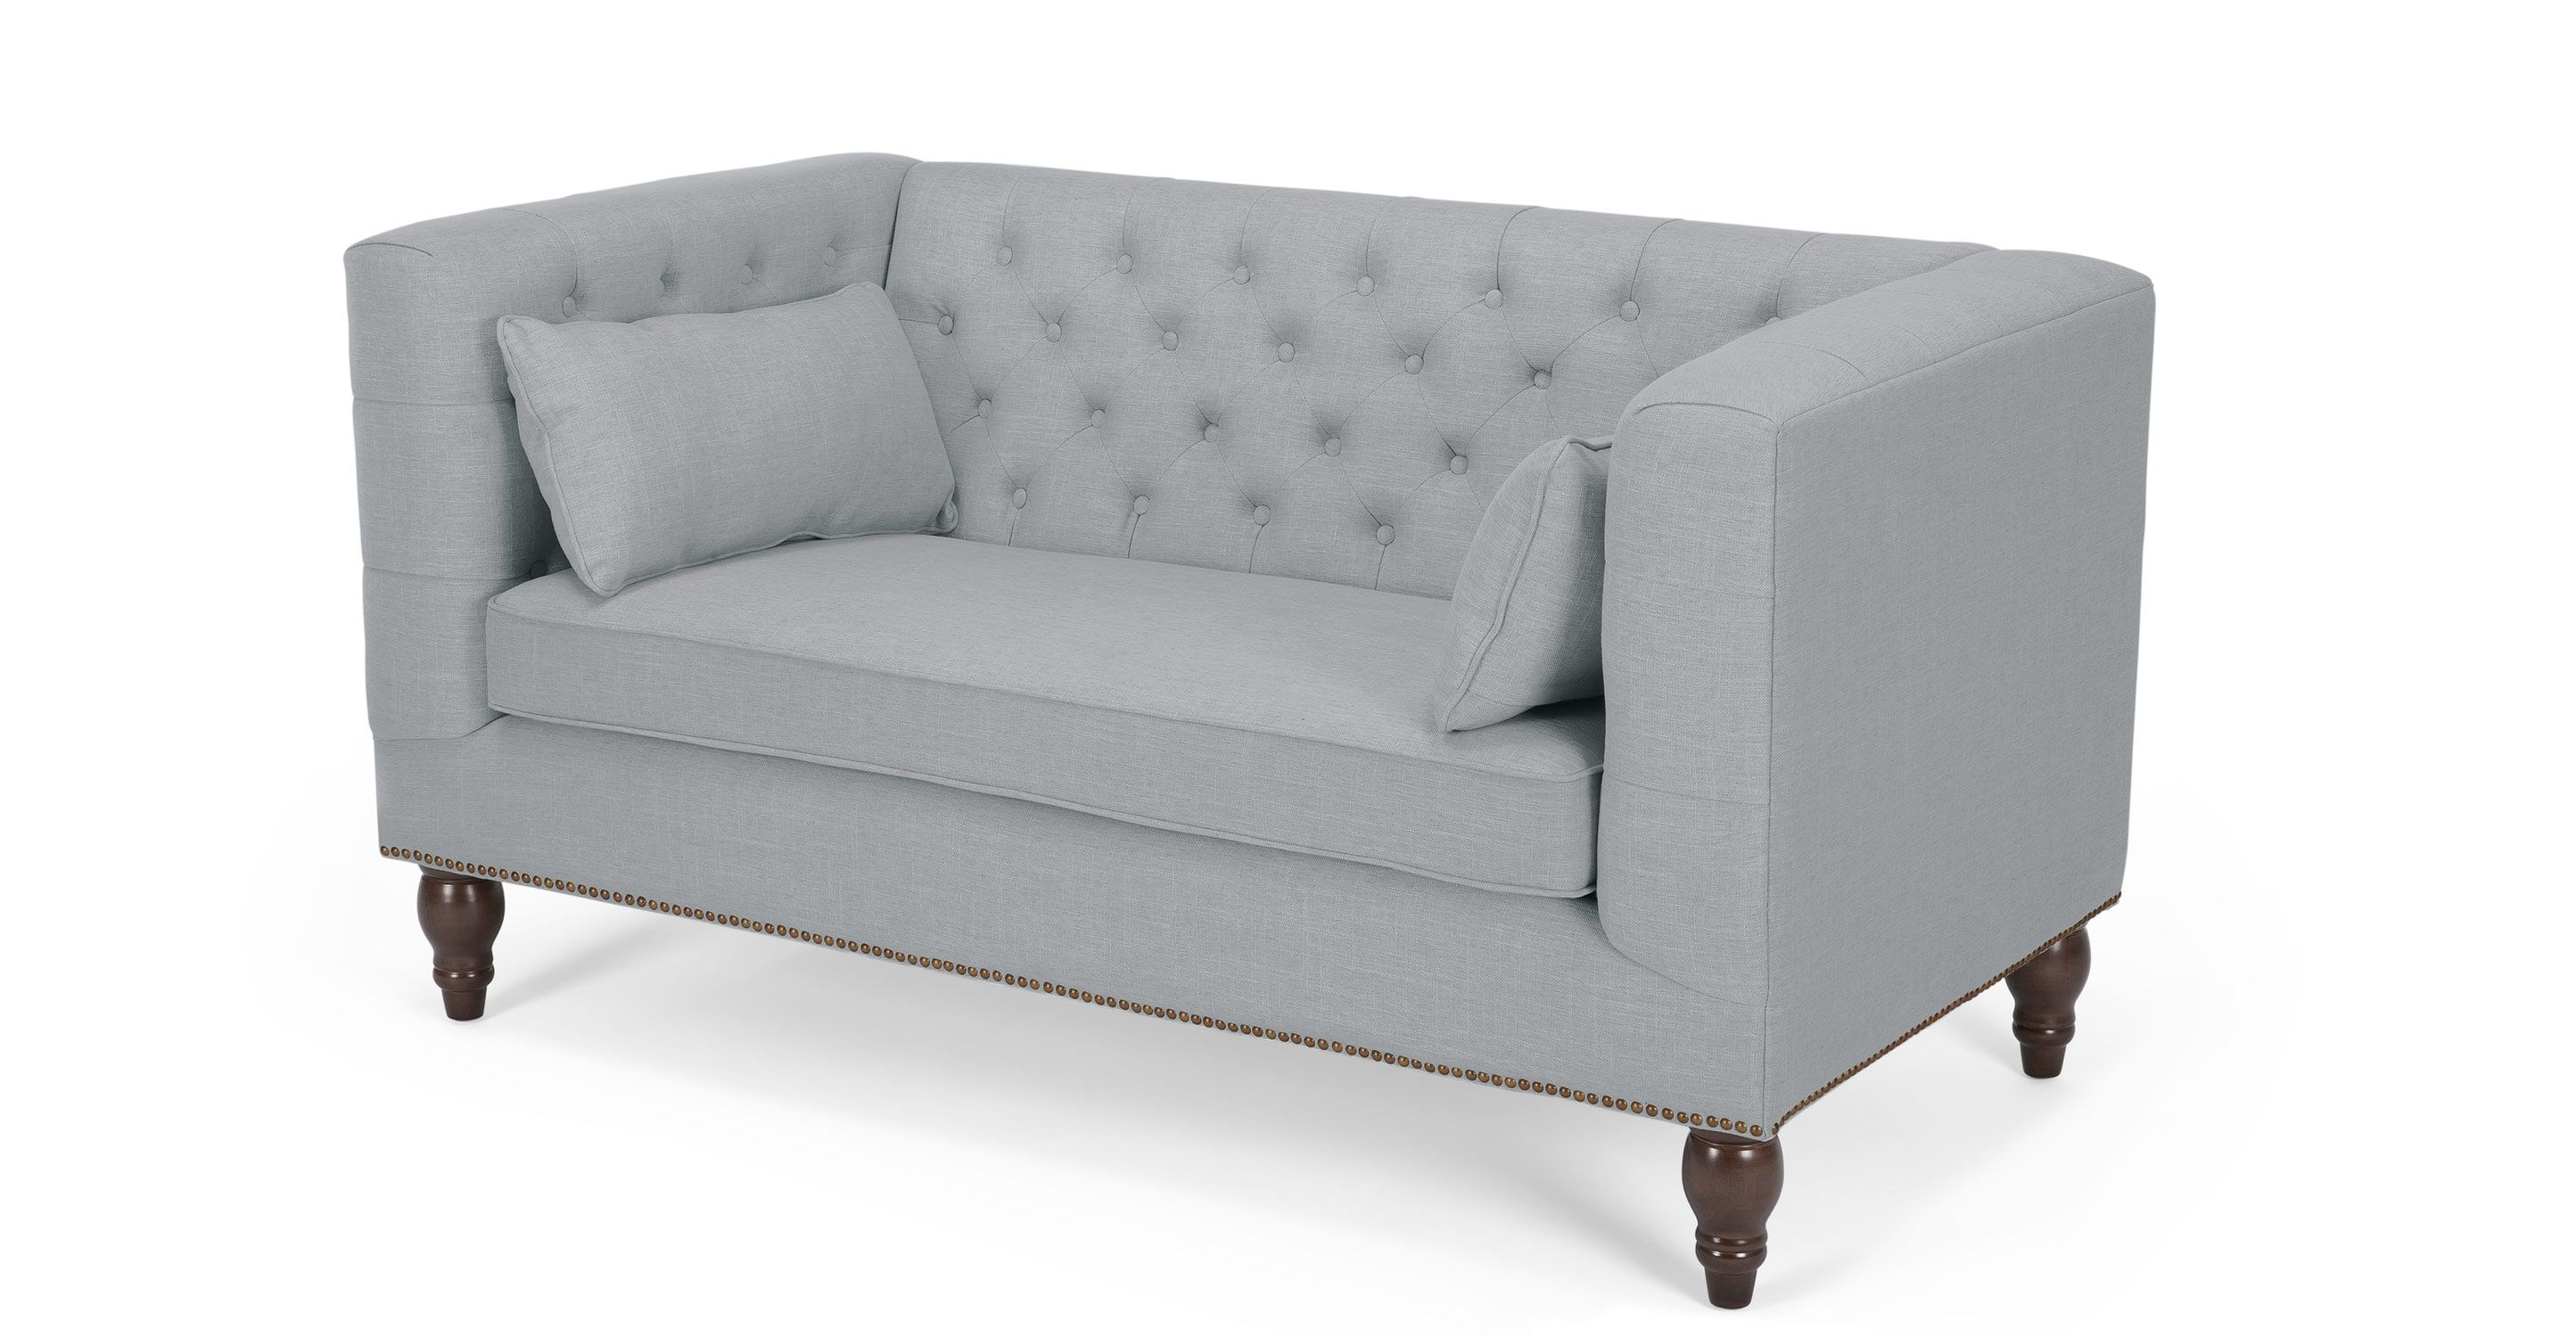 Lovely Flynn 2 Seater Sofa In Persian Grey